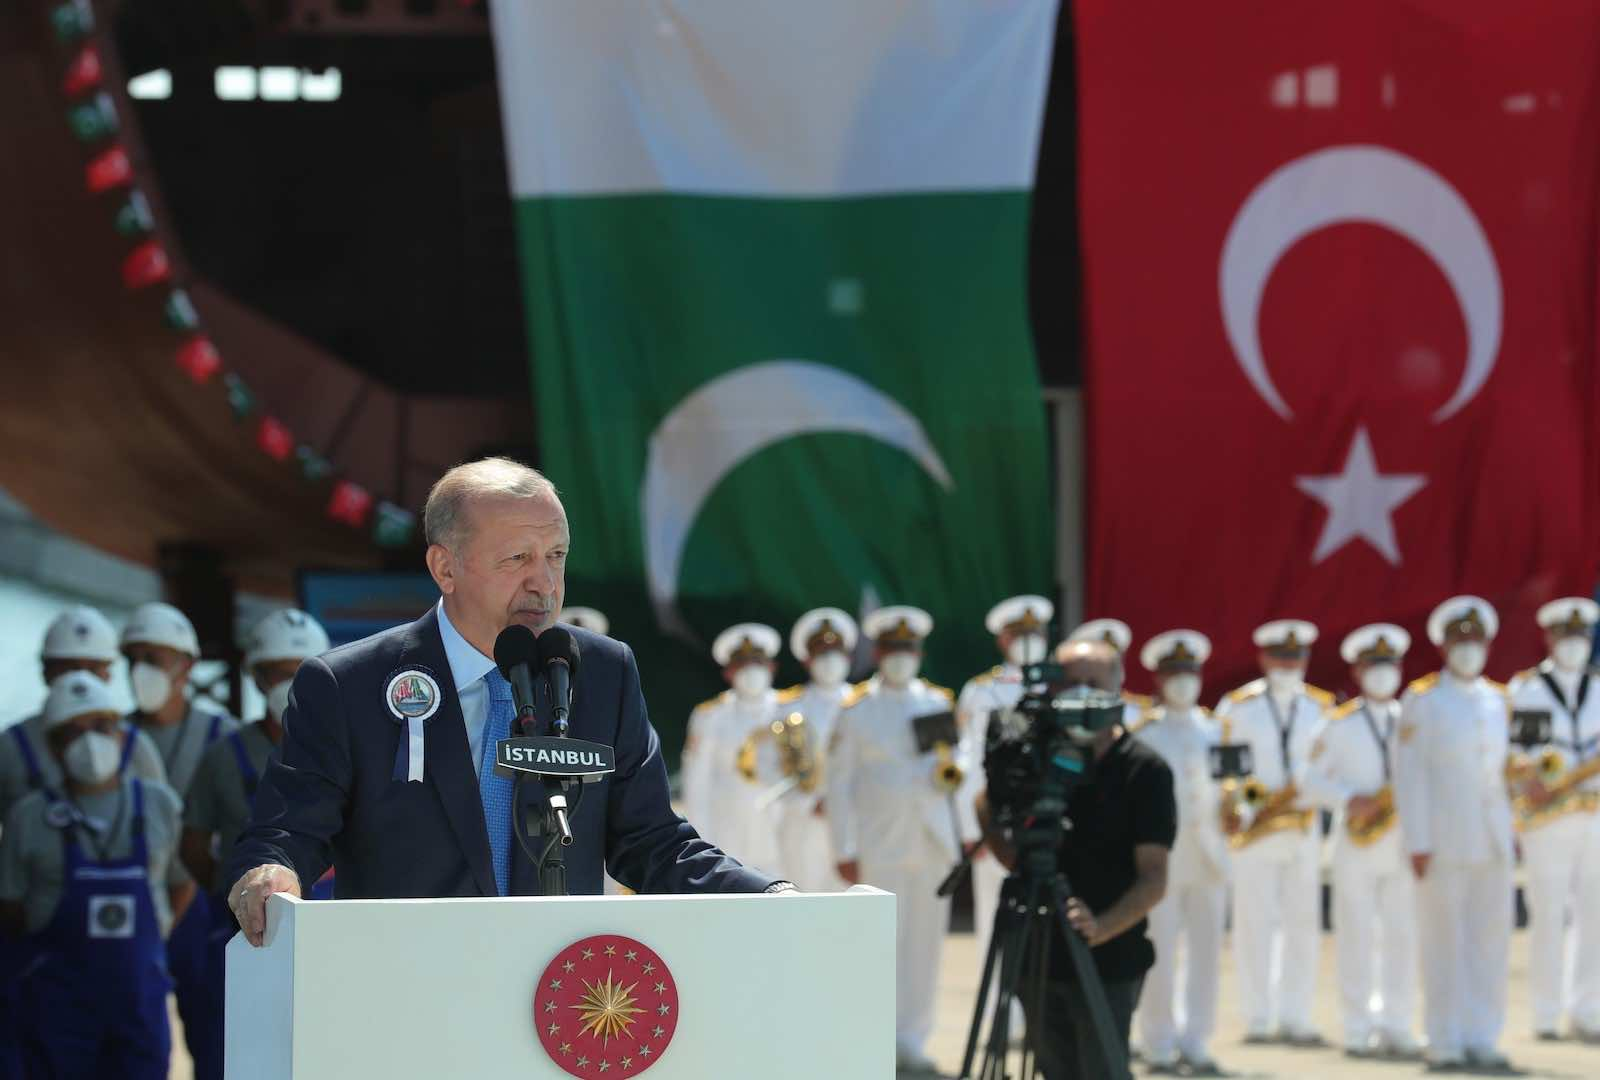 Turkish President Recep Tayyip Erdoğan in Istanbul on 15 August promising to increase cooperation with Pakistan to dispel concerns about a new wave of migration from Afghanistan (Xinhua via Getty Images)